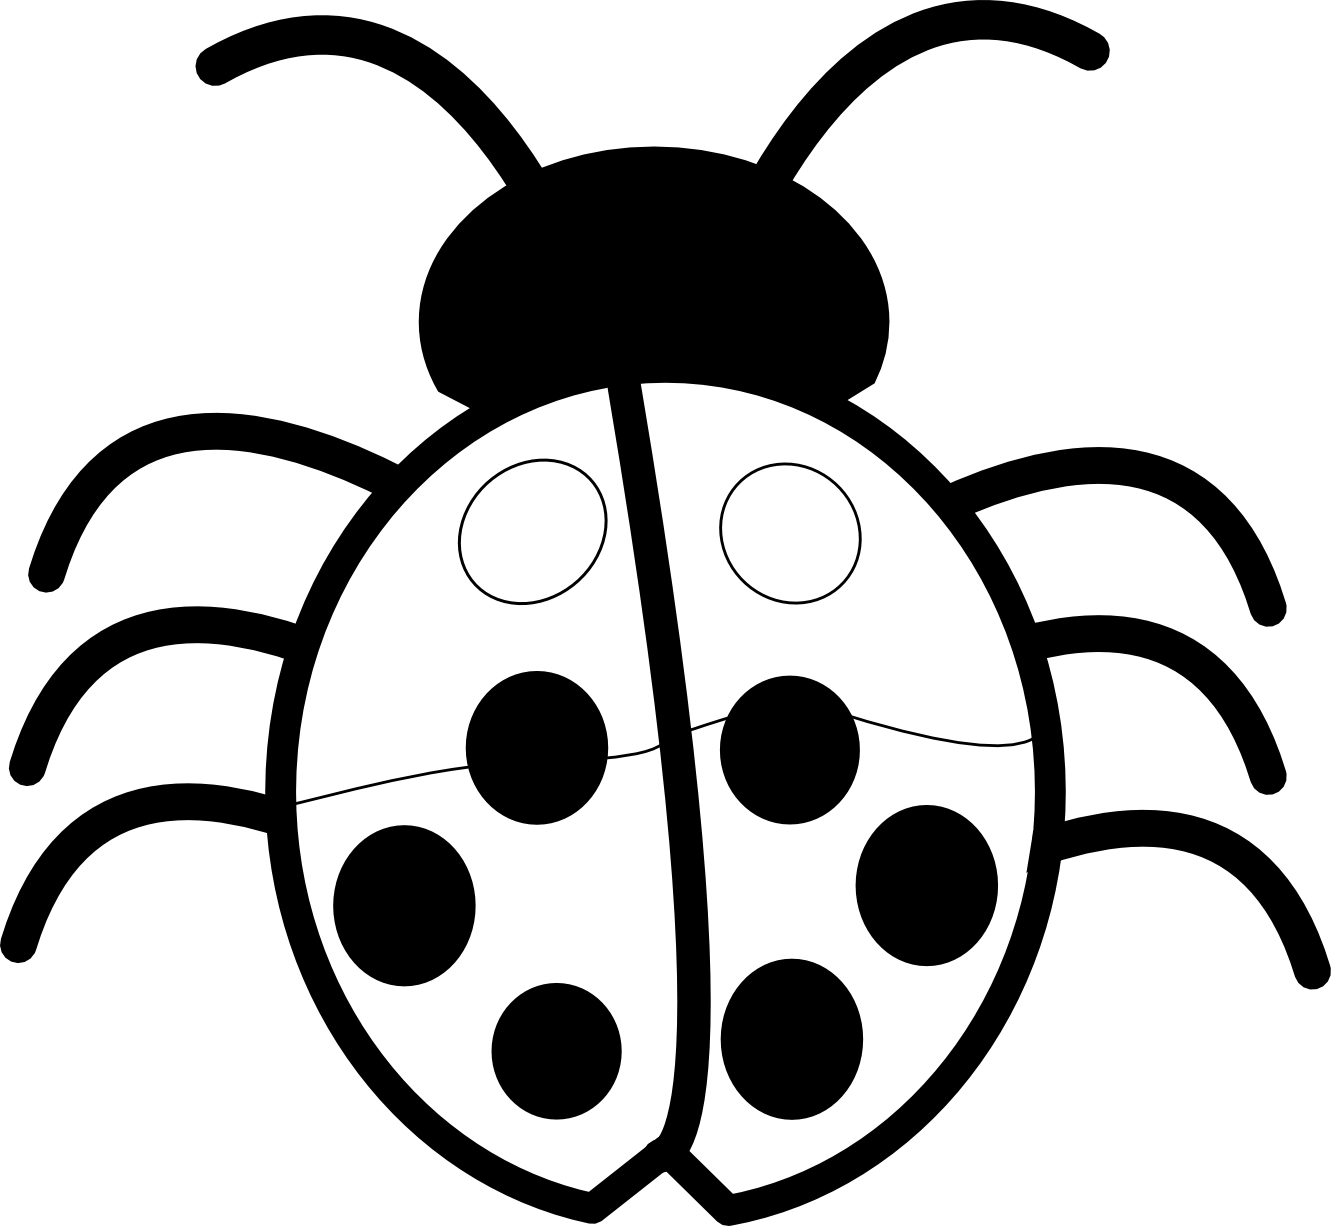 Free Ladybug Outline, Download Free Clip Art, Free Clip Art.